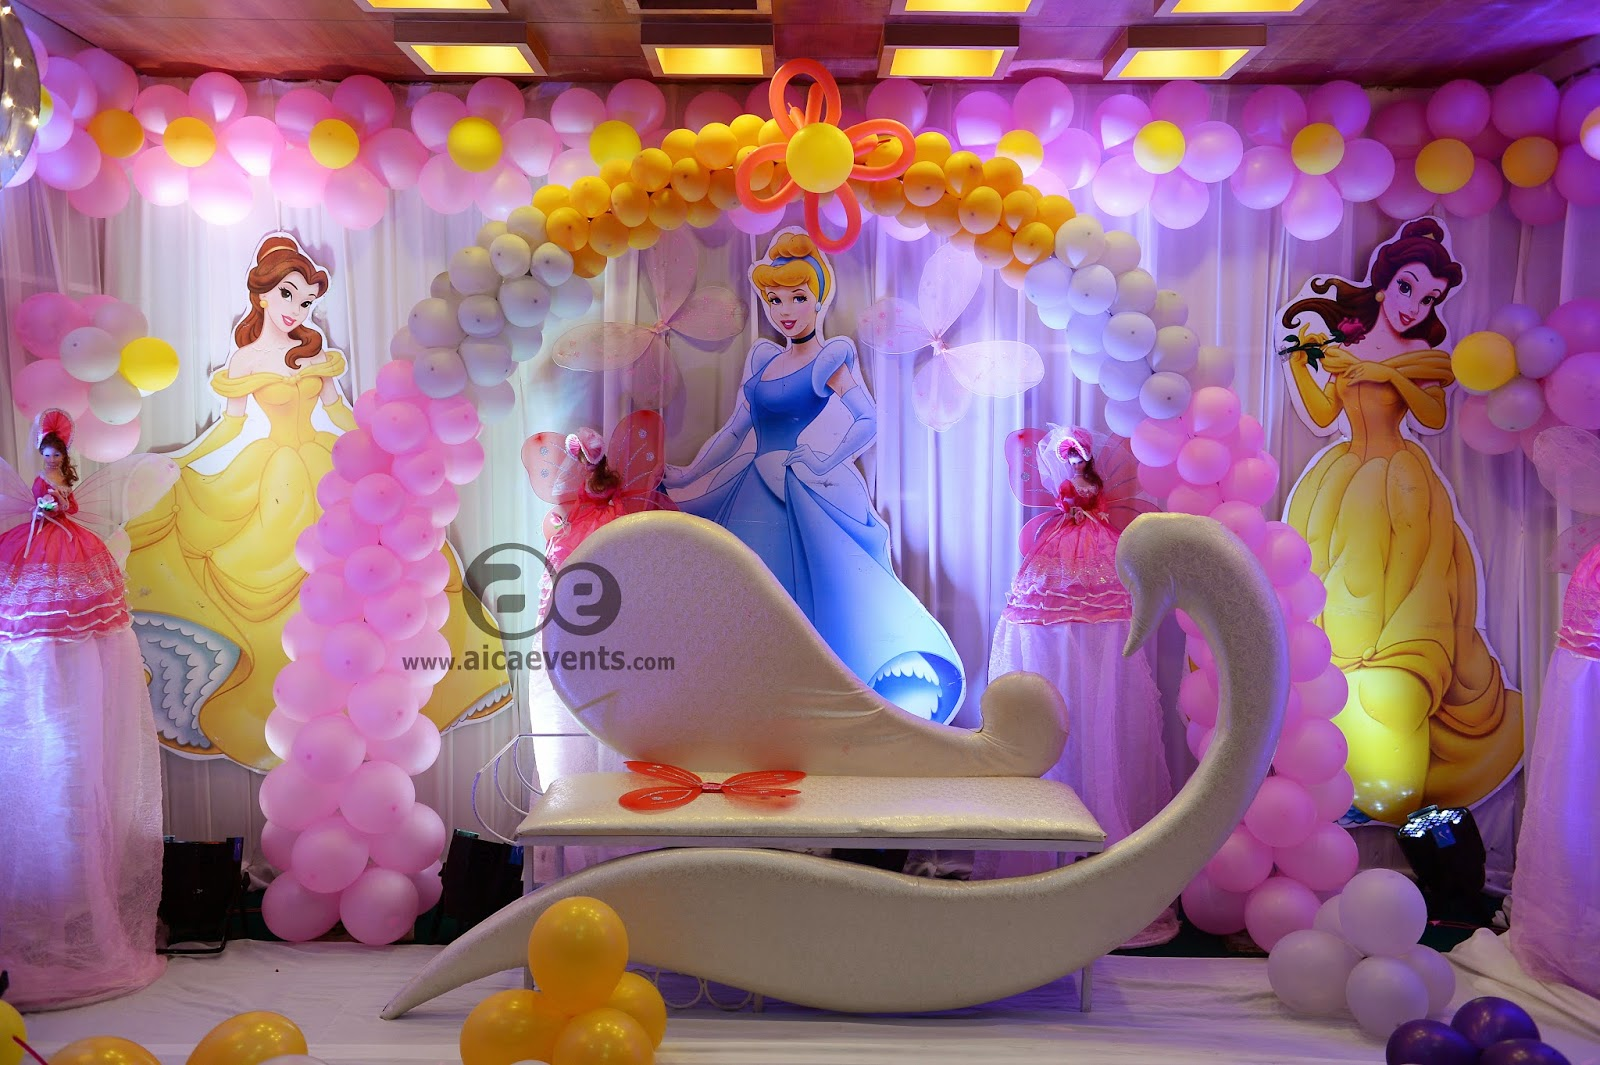 Aicaevents india barbie theme decorations by aica events for Decoration barbie